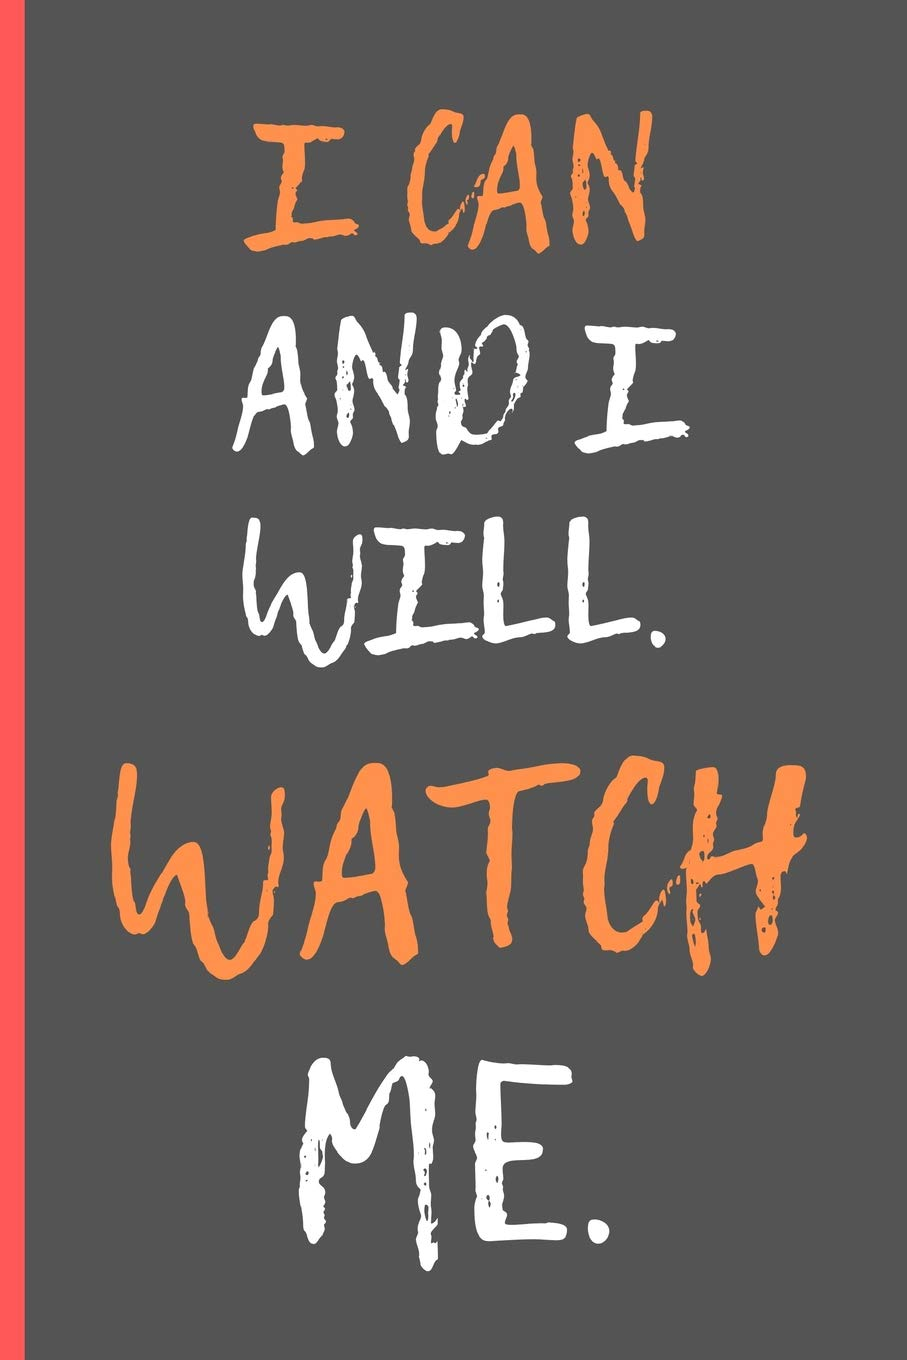 I Can And I Will Watch Me Motivational Quotes Novelty Notebook Journal An Excellent Gift Idea 6 X 9 Notebooks Dawn S 9781076669414 Amazon Com Books